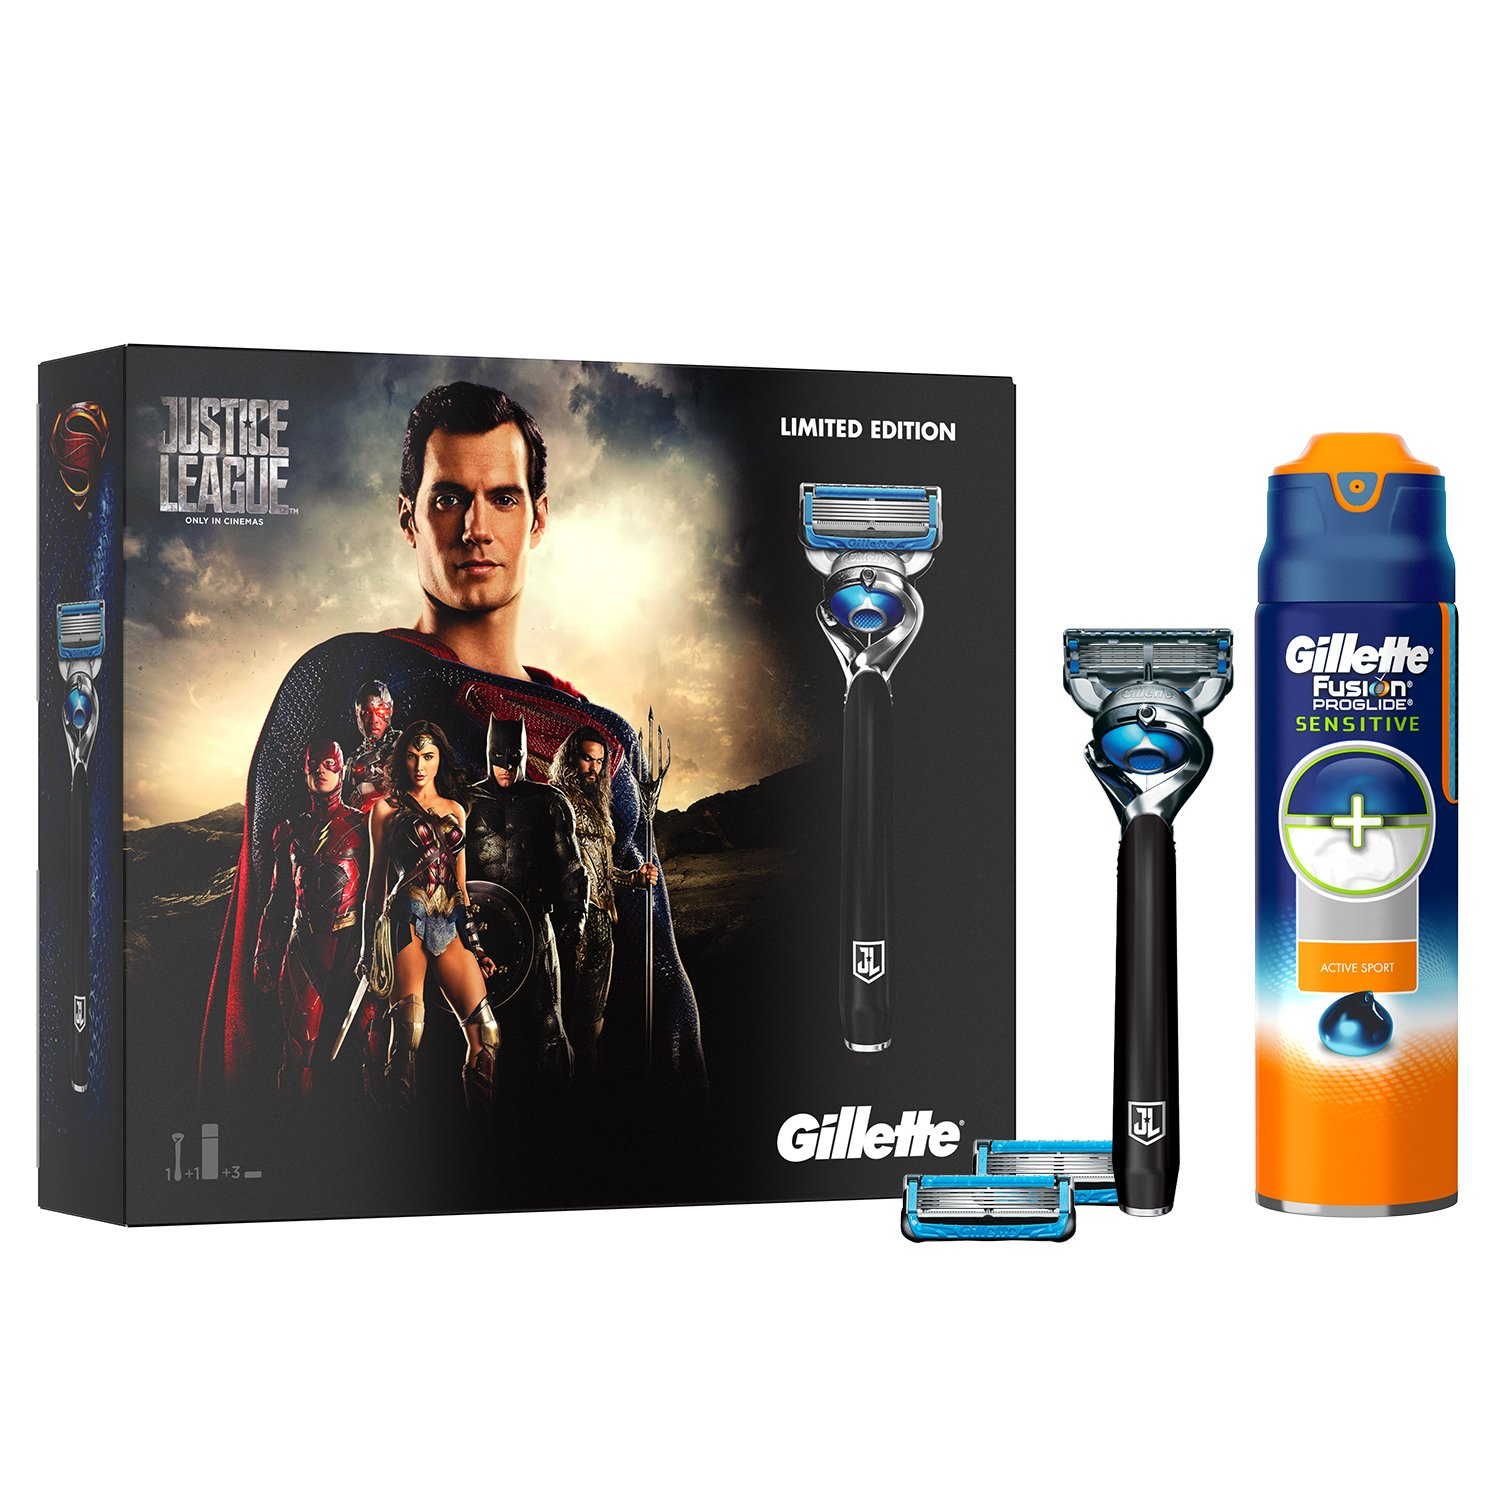 Gillette Fusion ProShield Chill Razor Justice League Edition Gift Set/2 x Blade Refills and Sensitive Shaving Gel Procter & Gamble 81628139